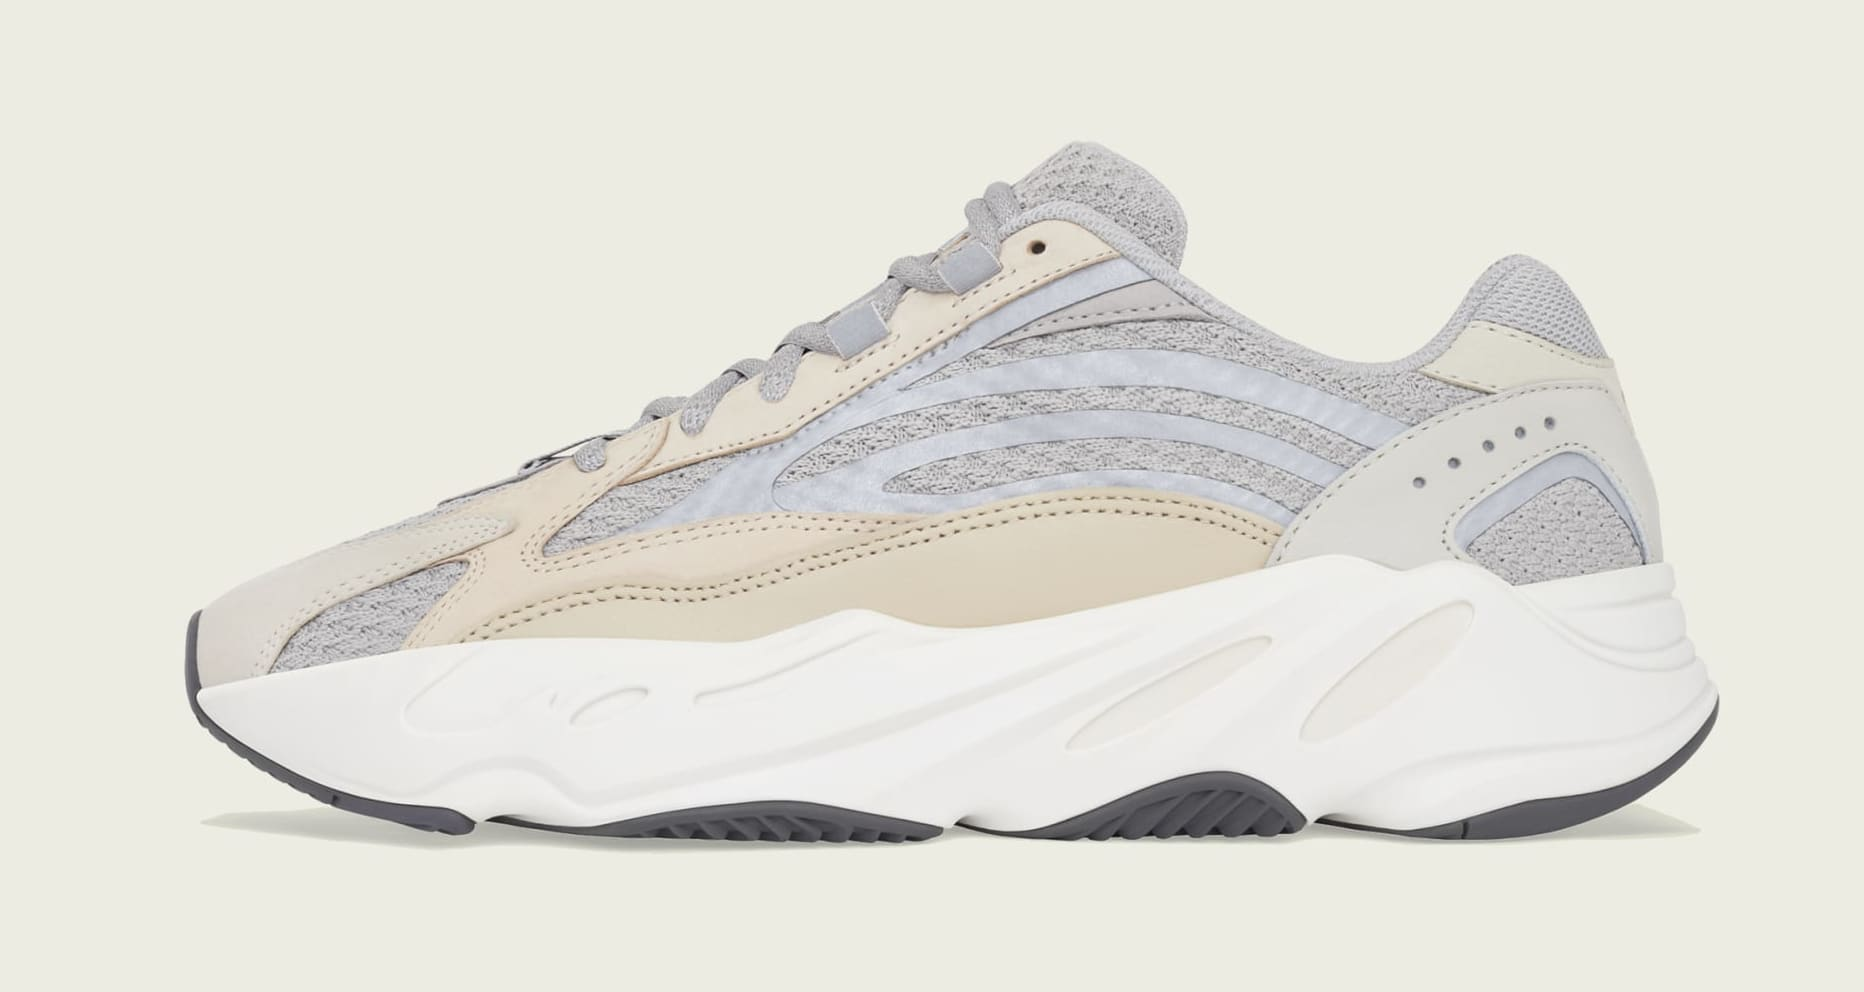 Adidas Yeezy Boost 700 V2 'Cream' GY7924 Lateral